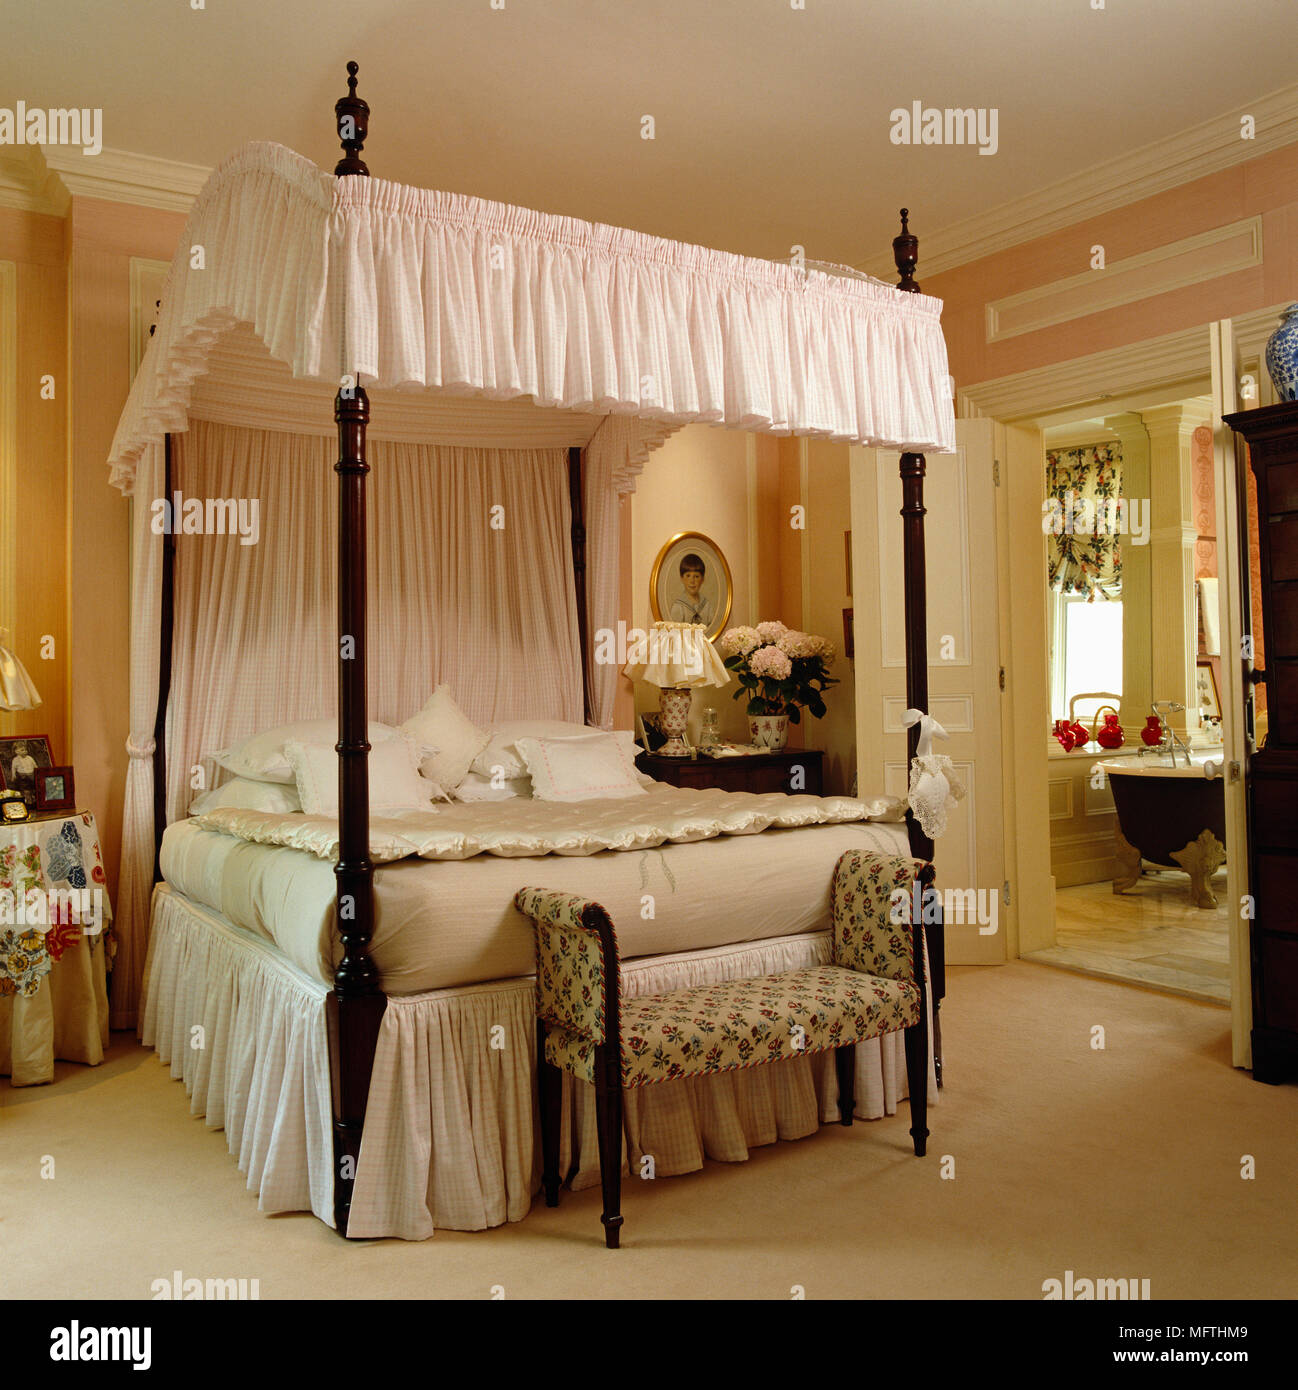 Beautiful Opulent Four Poster Bed With White Canopy Above Bed In Pink Bedroom   Stock  Image